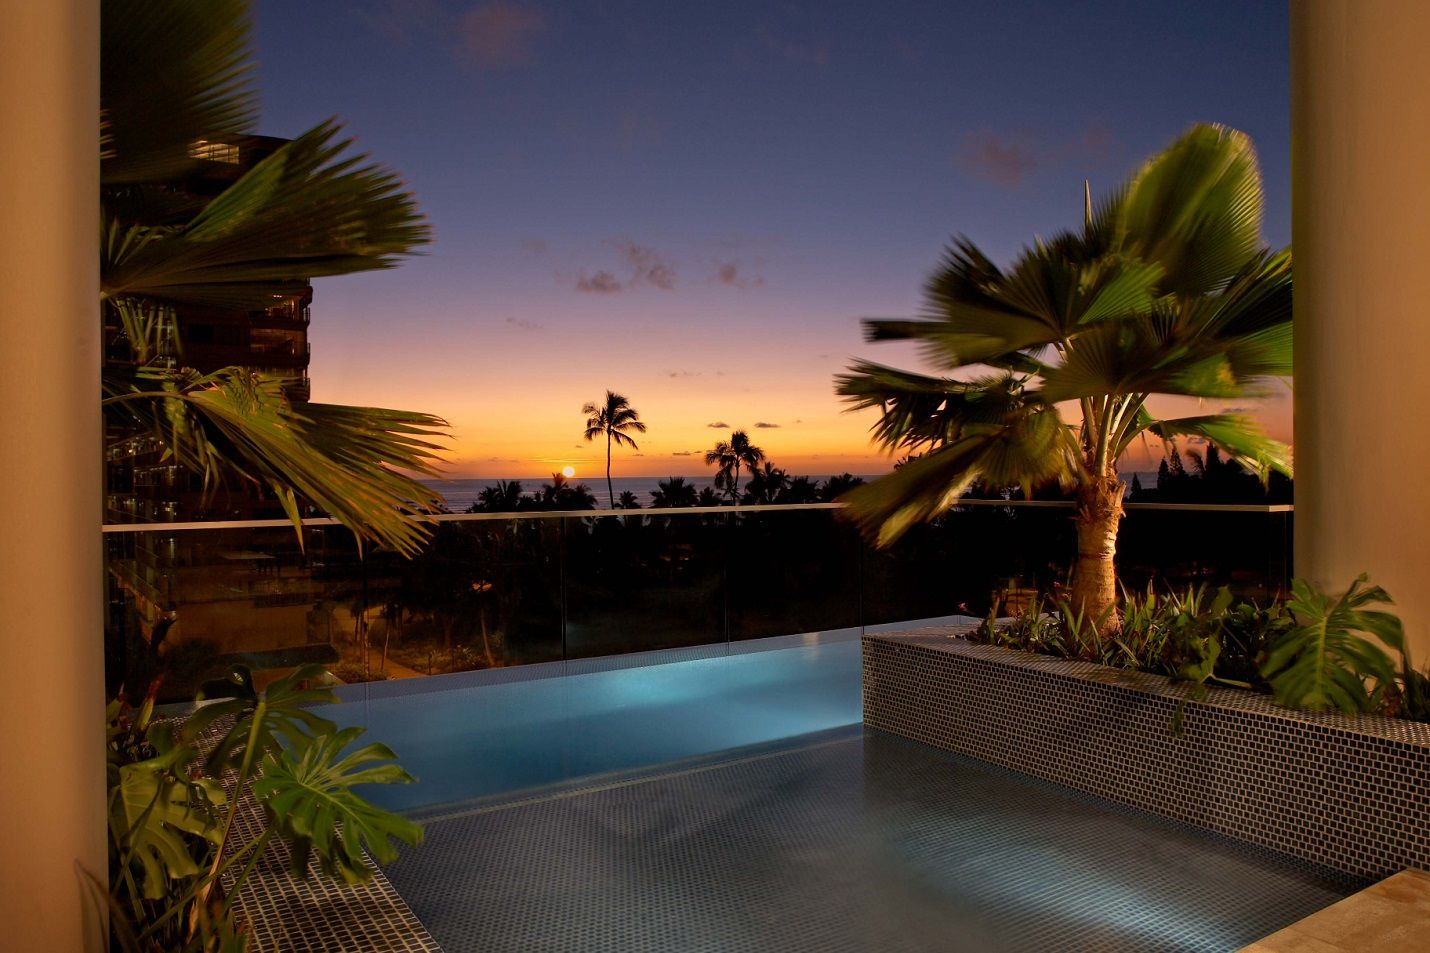 5 Star Hotels In Honolulu Trump Hotel Waikiki Photo Gallery